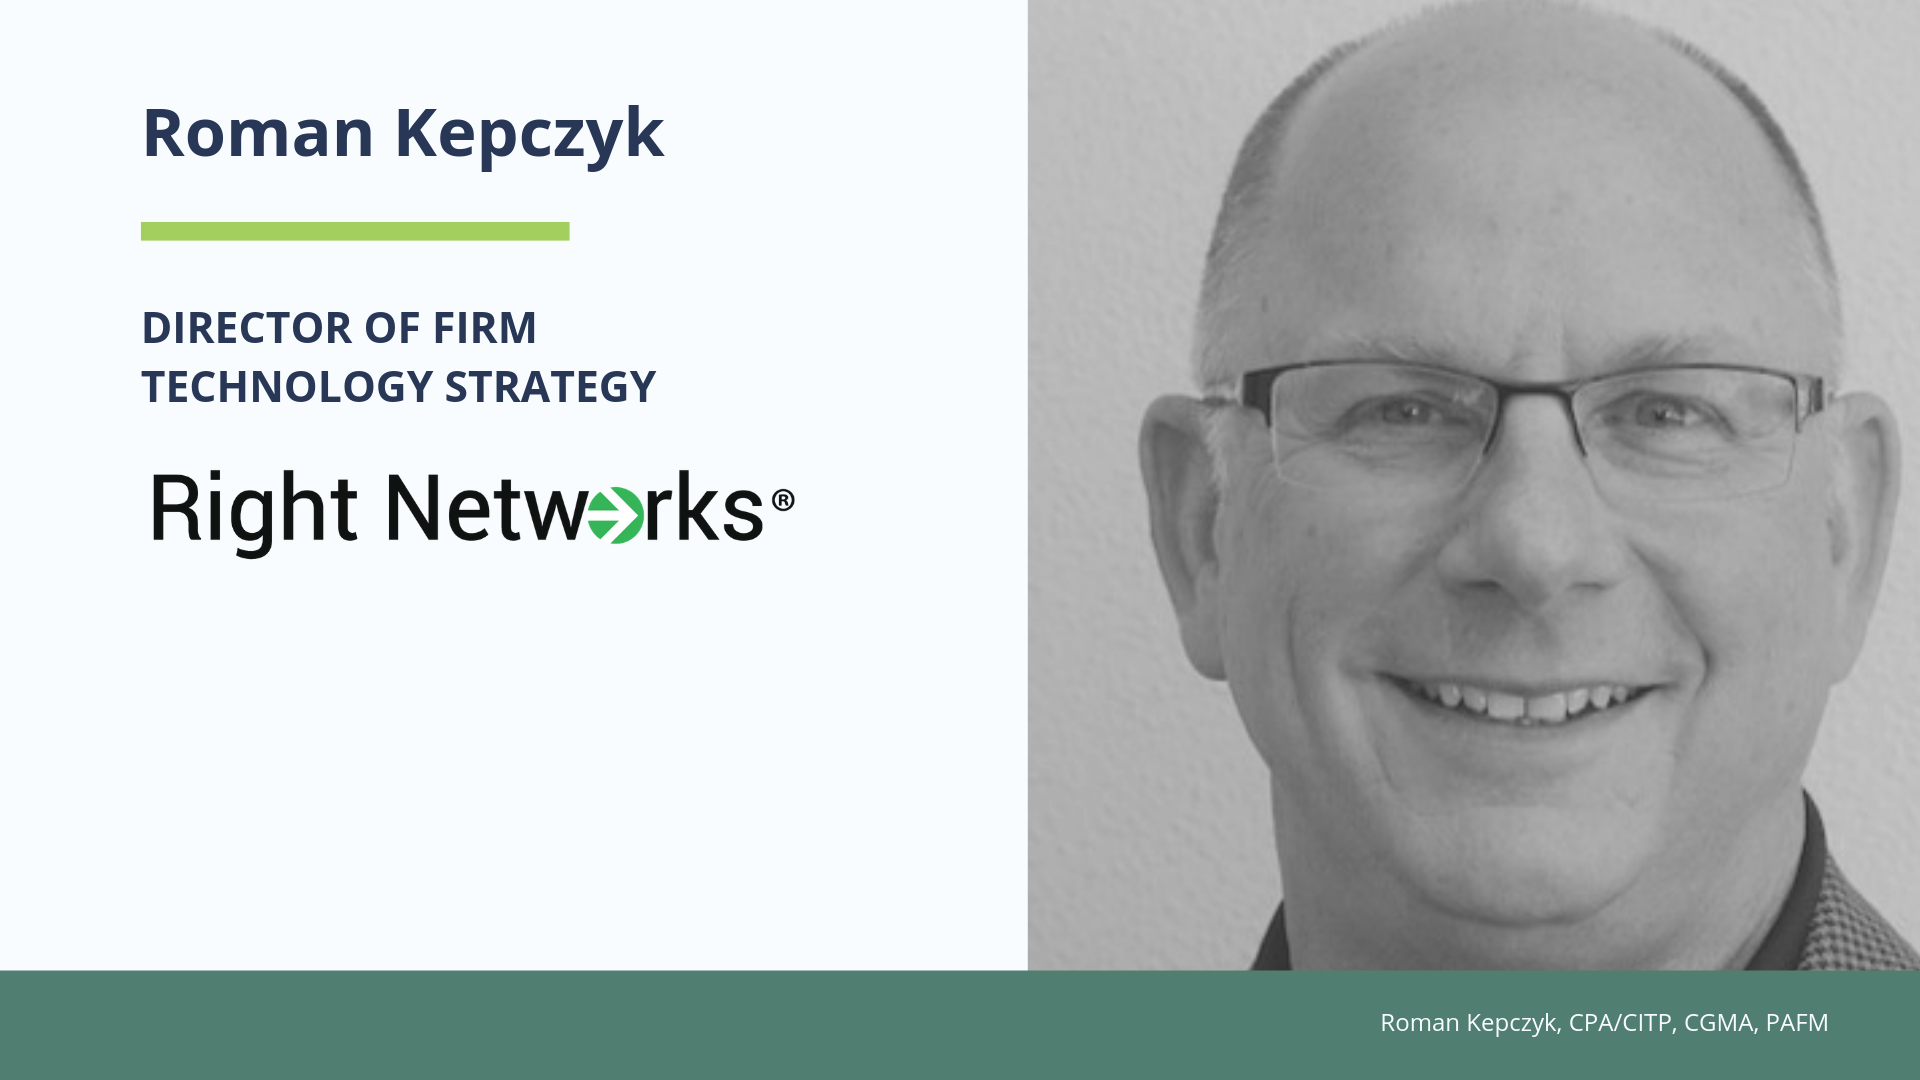 Roman Kepczyk Expands Role with Right Networks as Director of Firm Technology Strategy